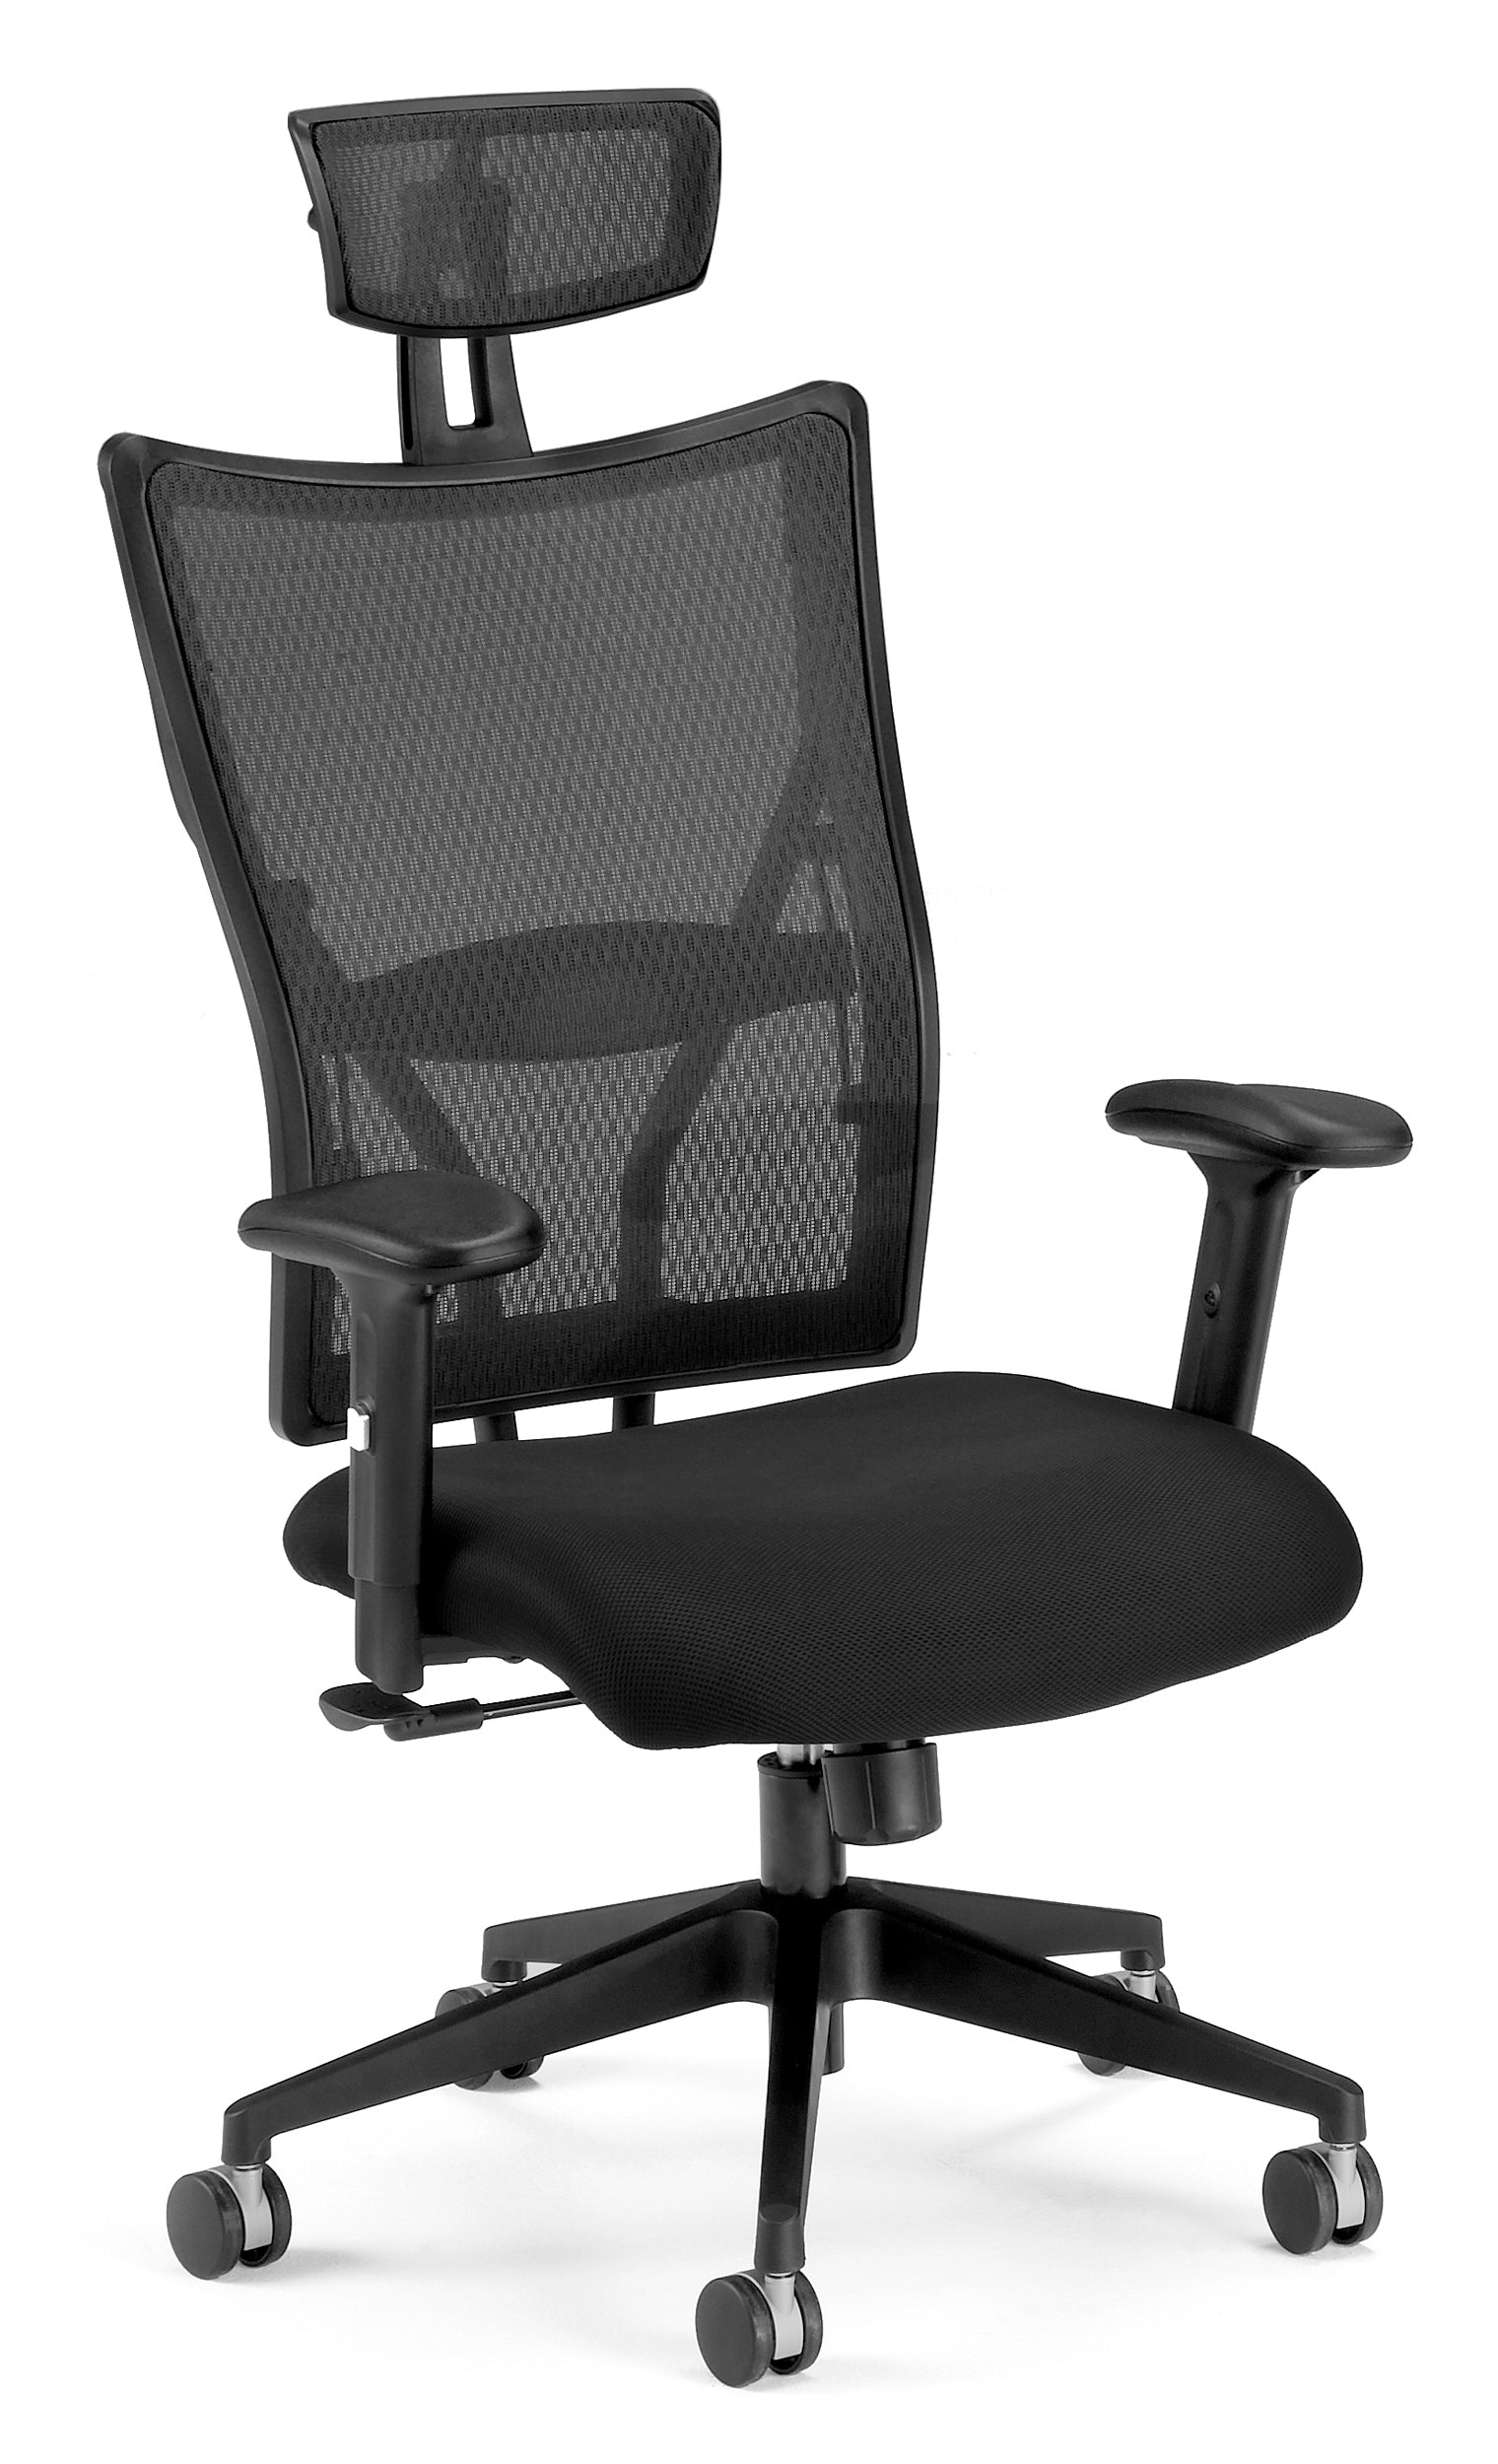 590-F Talisto Series High-Back Fabric / Mesh Office Headrest Chair